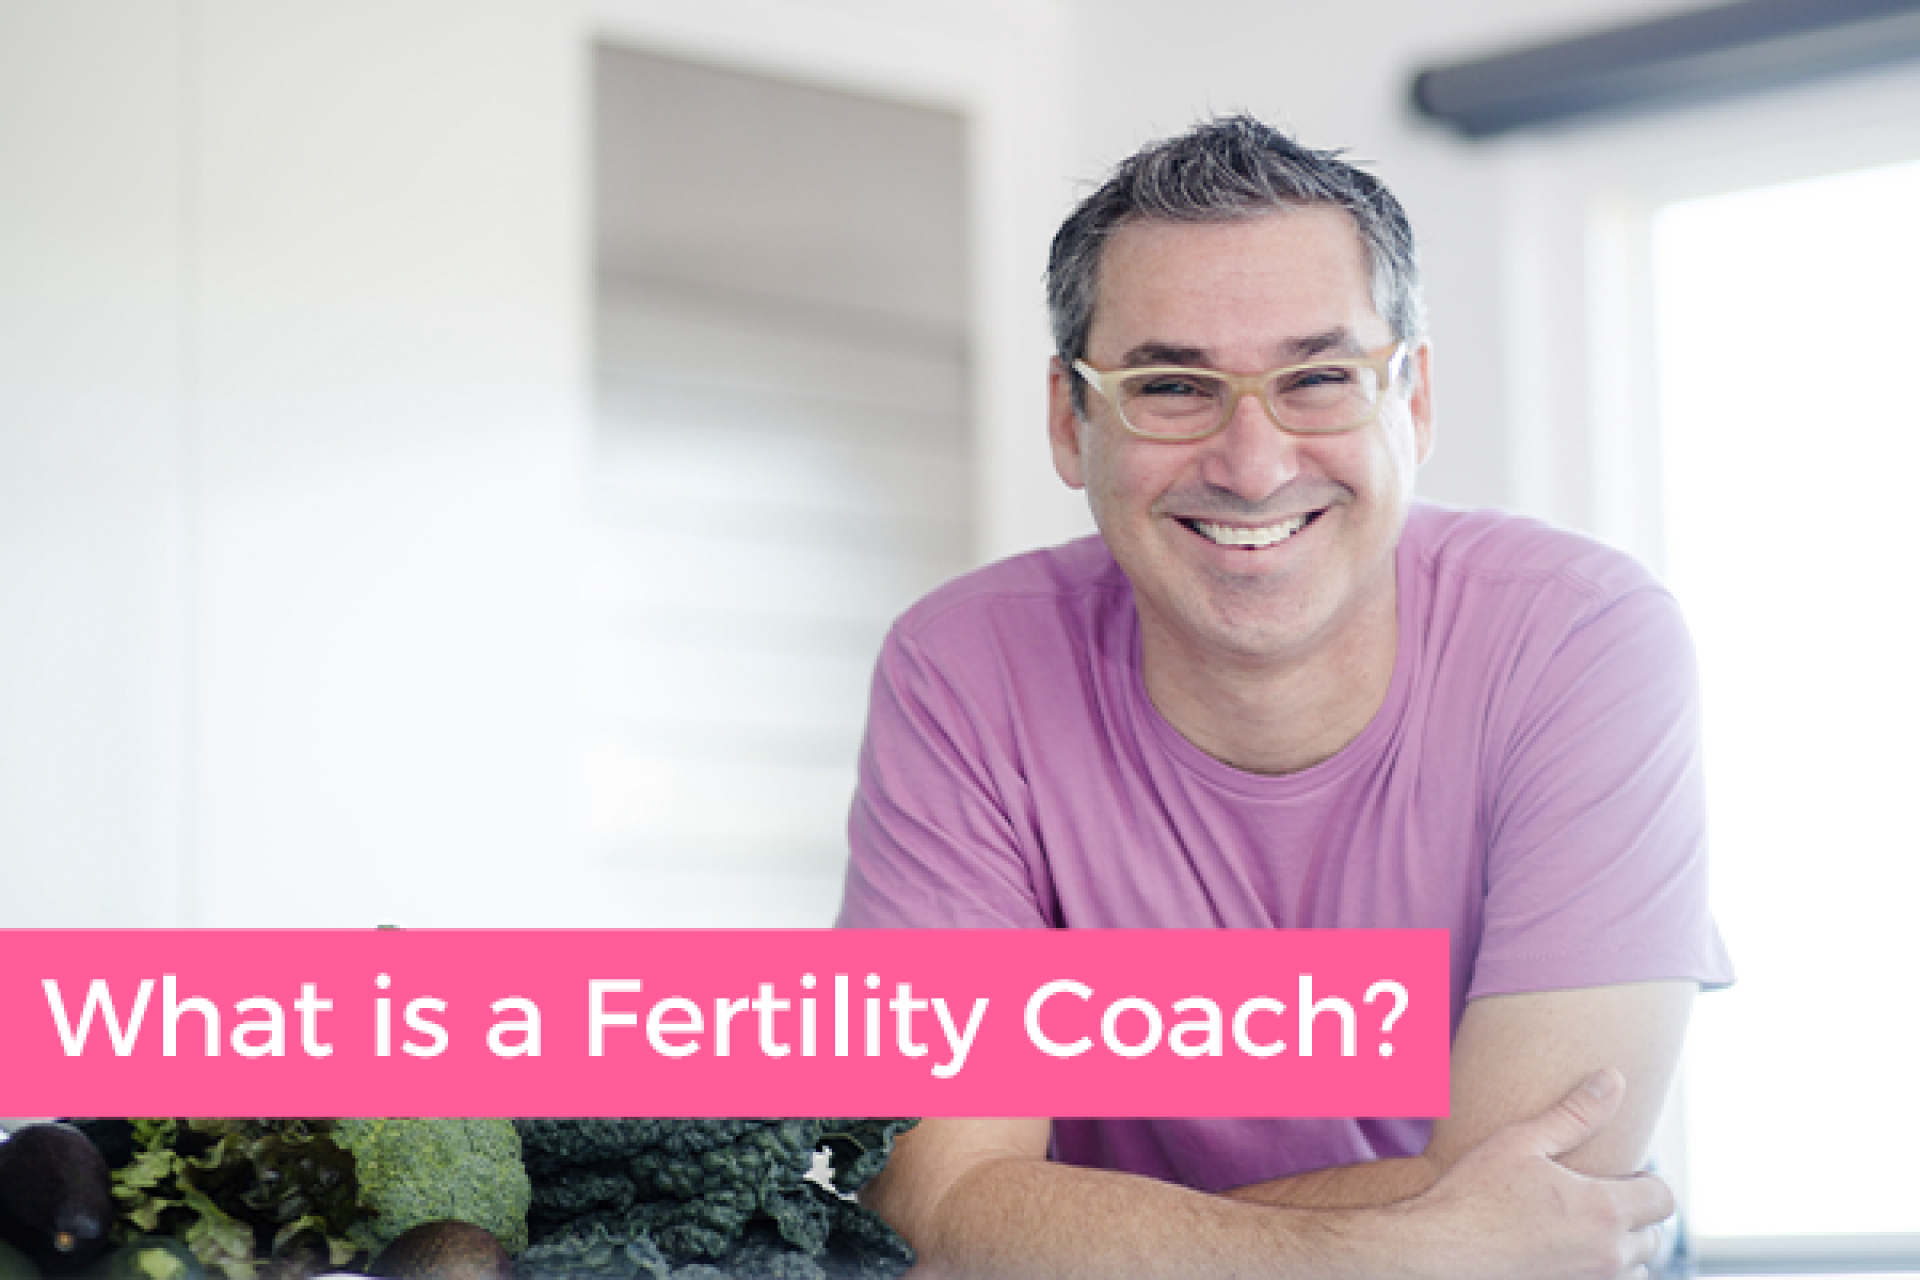 What is a Fertility Coach?